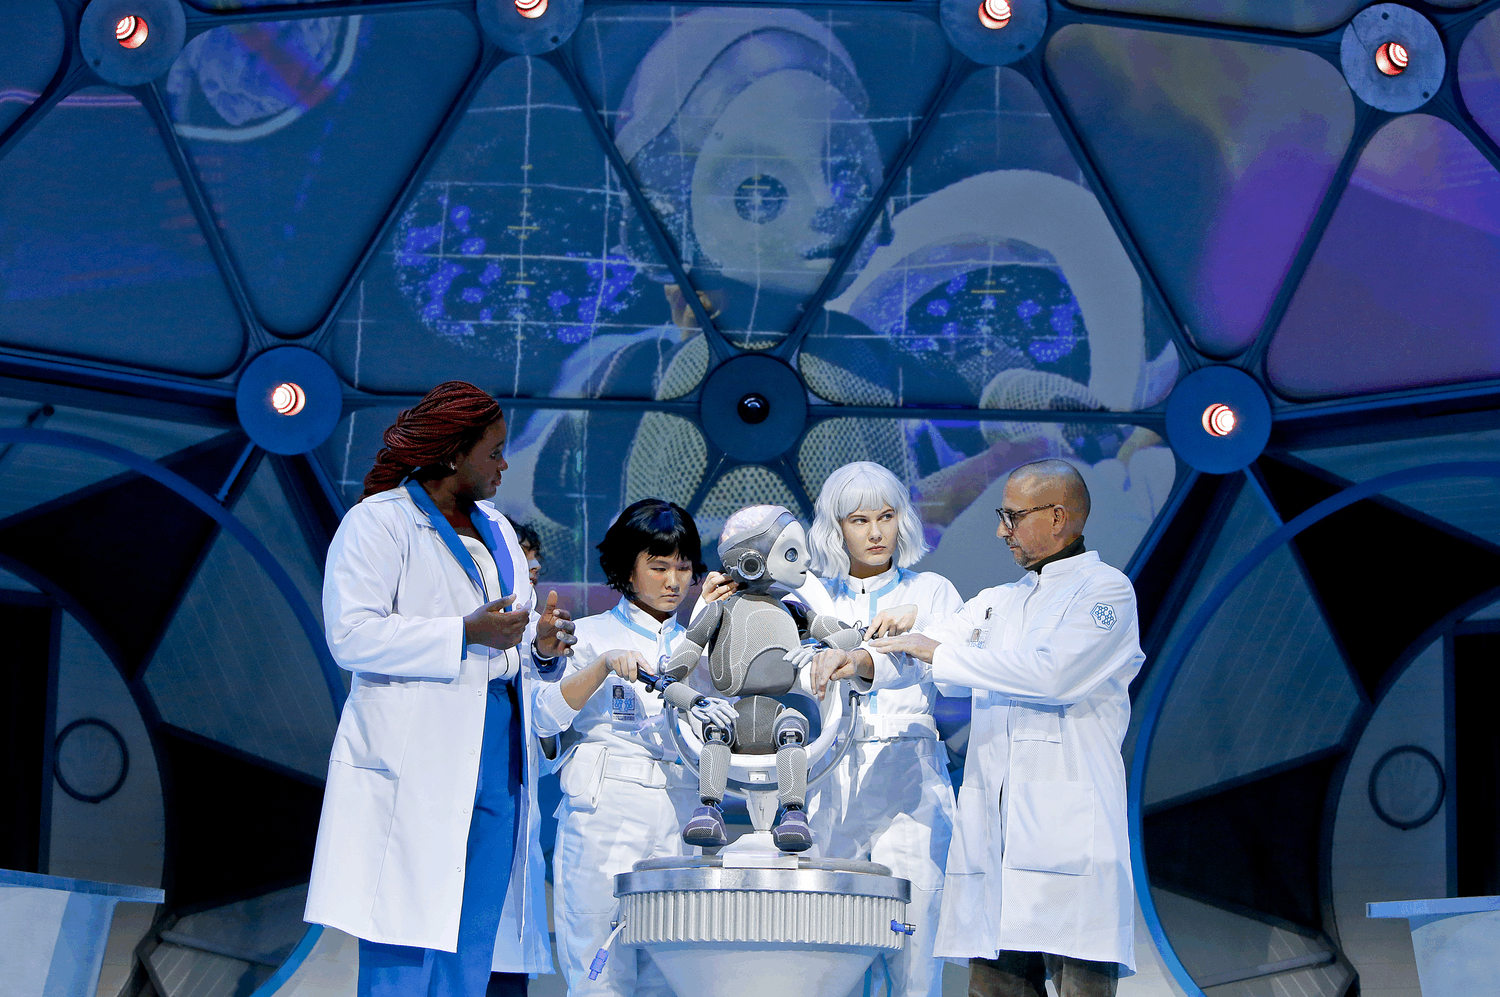 Small Robot Boy sitting in a chair surrounded by a team of Scientists.  The Robot's face is being projected onto walls behind.